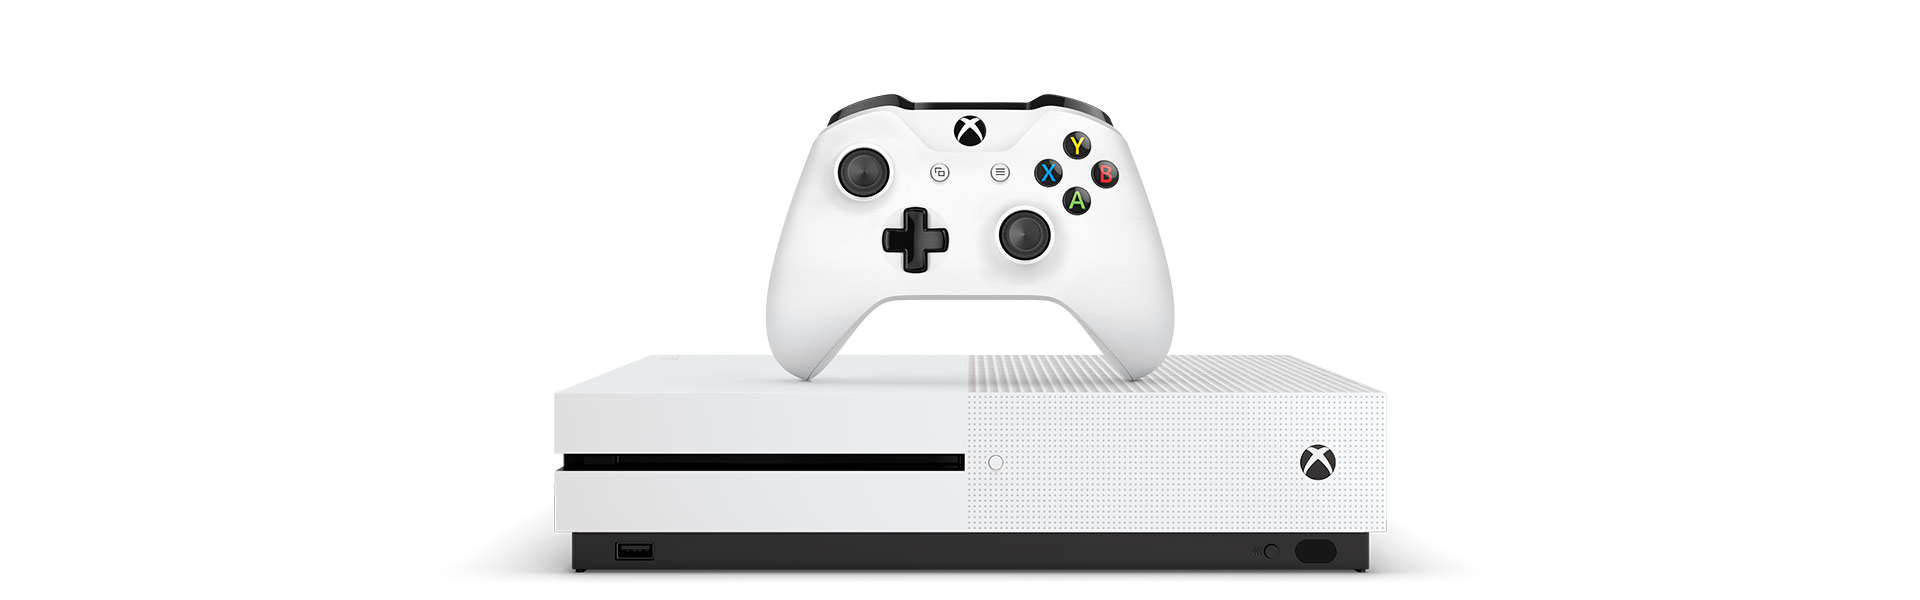 Xbox One S set forfra med en Xbox Wireless Controller på toppen